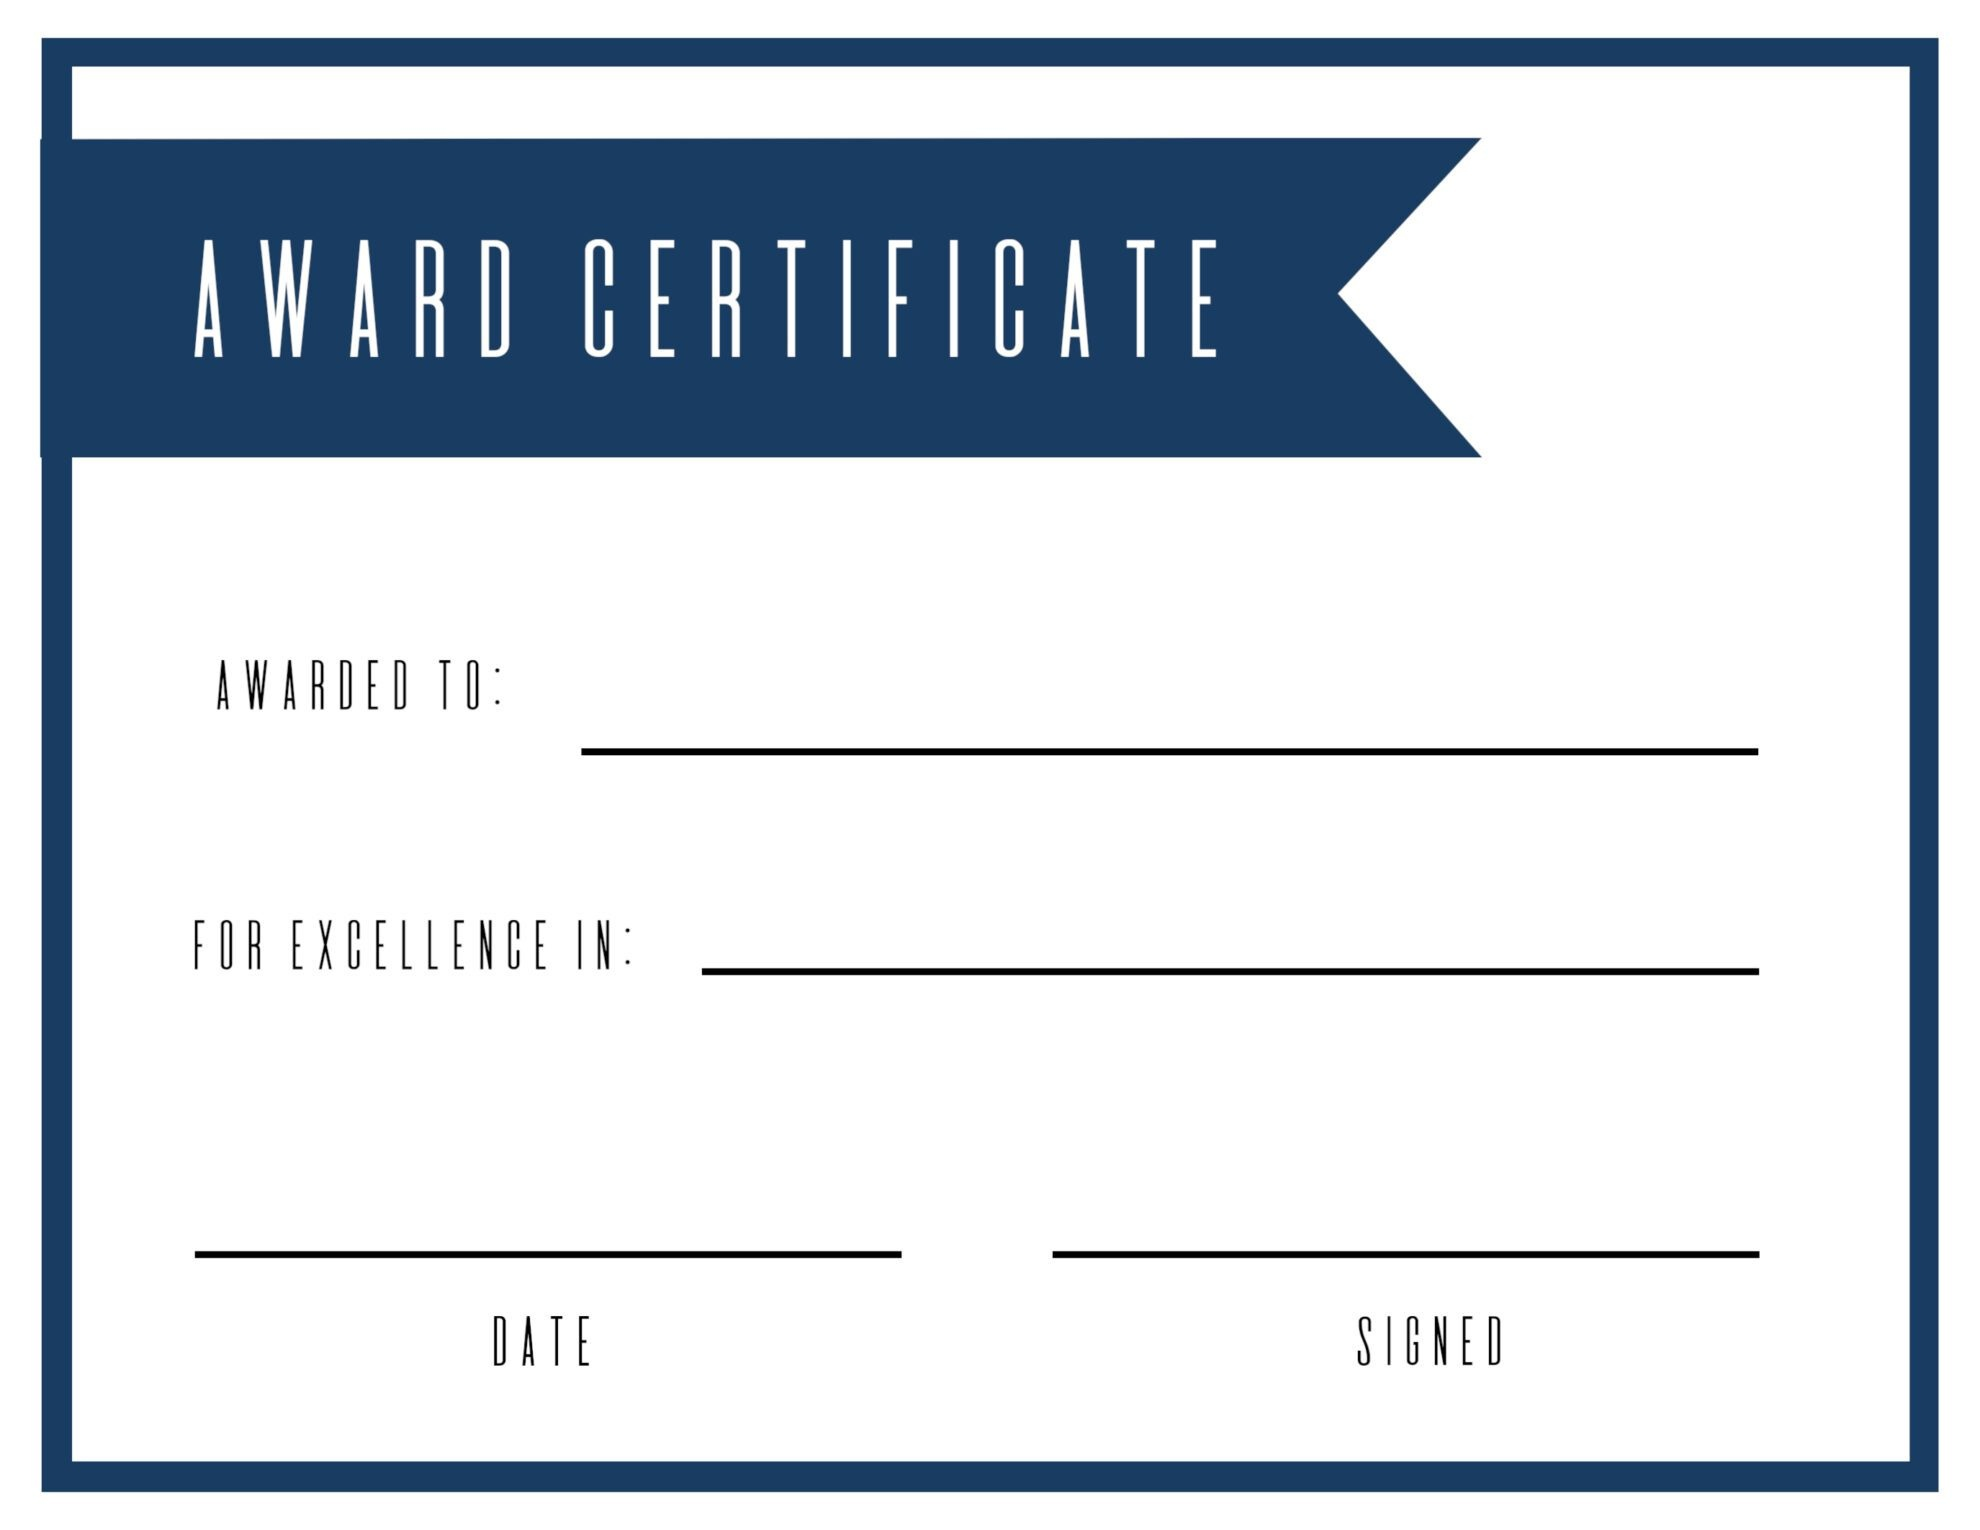 Free Printable Award Certificate Template - Paper Trail Design - Sports Certificate Templates Free Printable